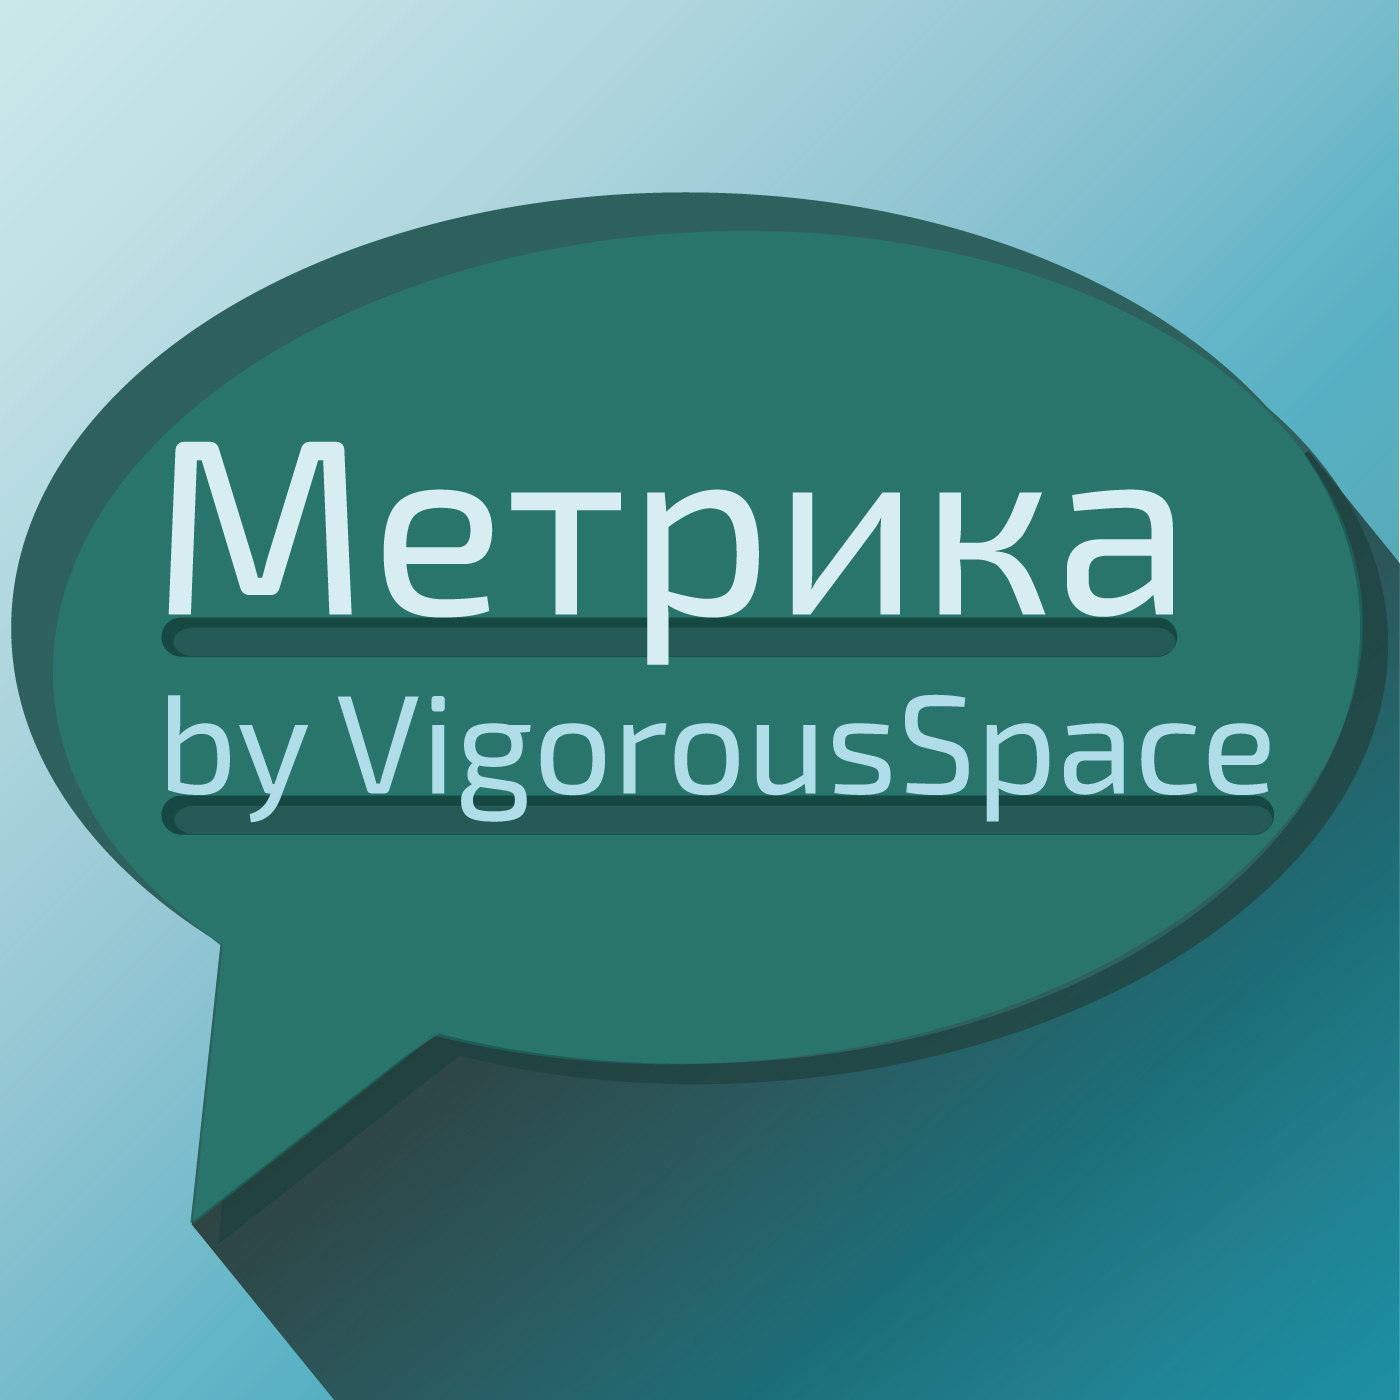 Metrica_by_Vigorousspace